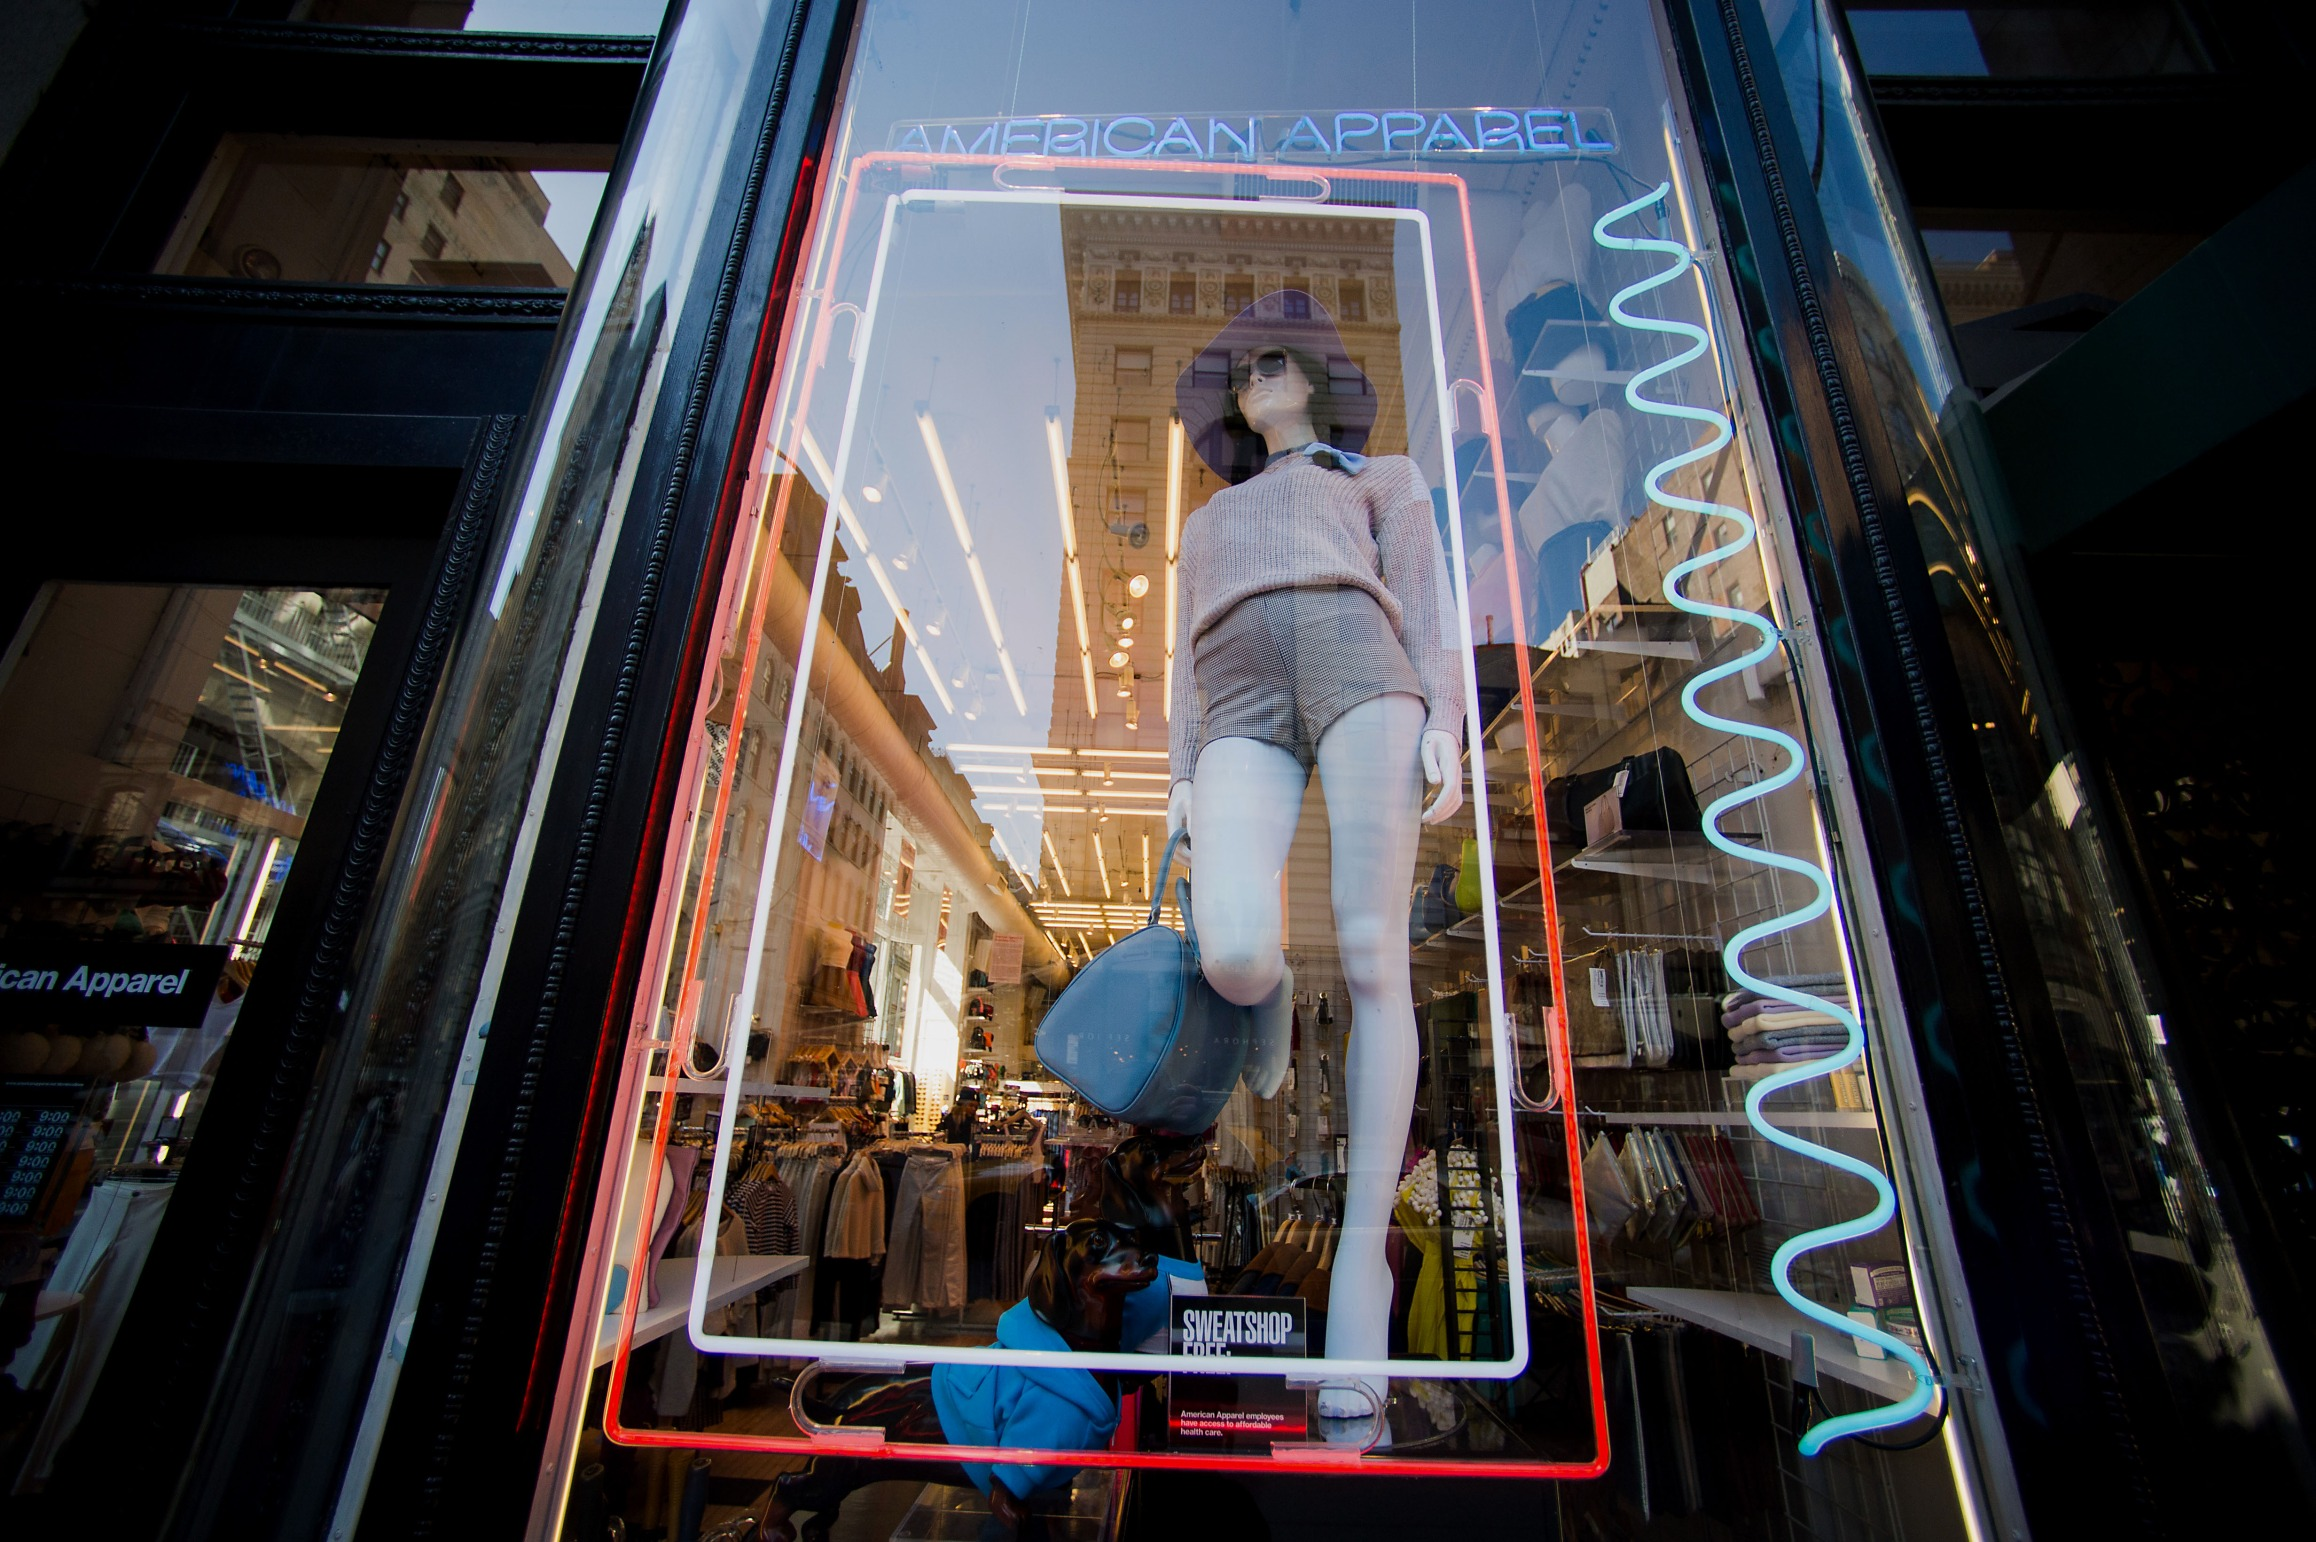 A mannequin stands in the window of an American Apparel Inc. store in New York, U.S.